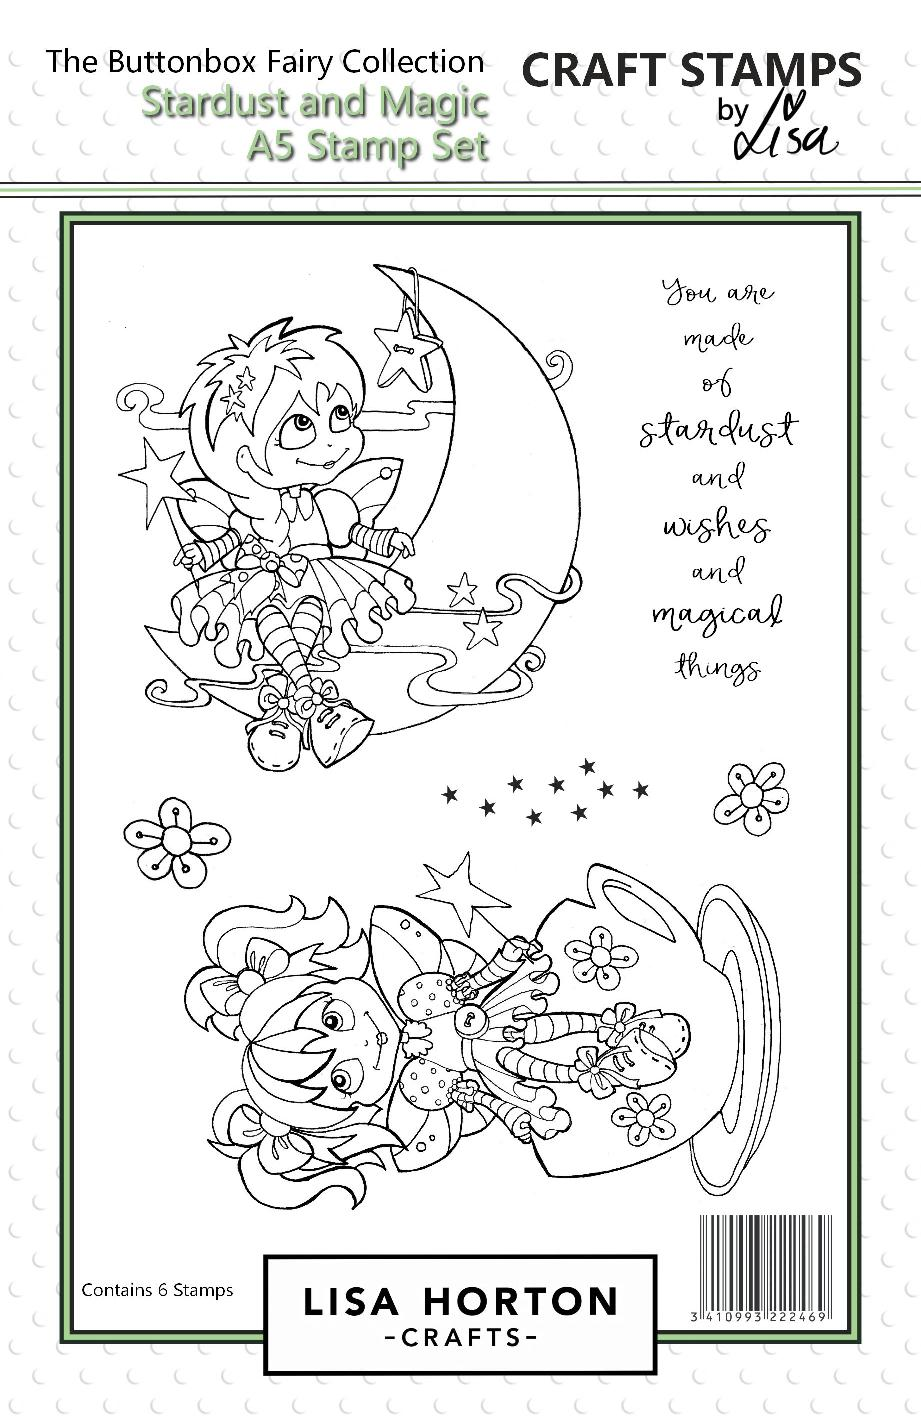 Buttonbox Fairies - Stardust and Magic A5 Stamp Set